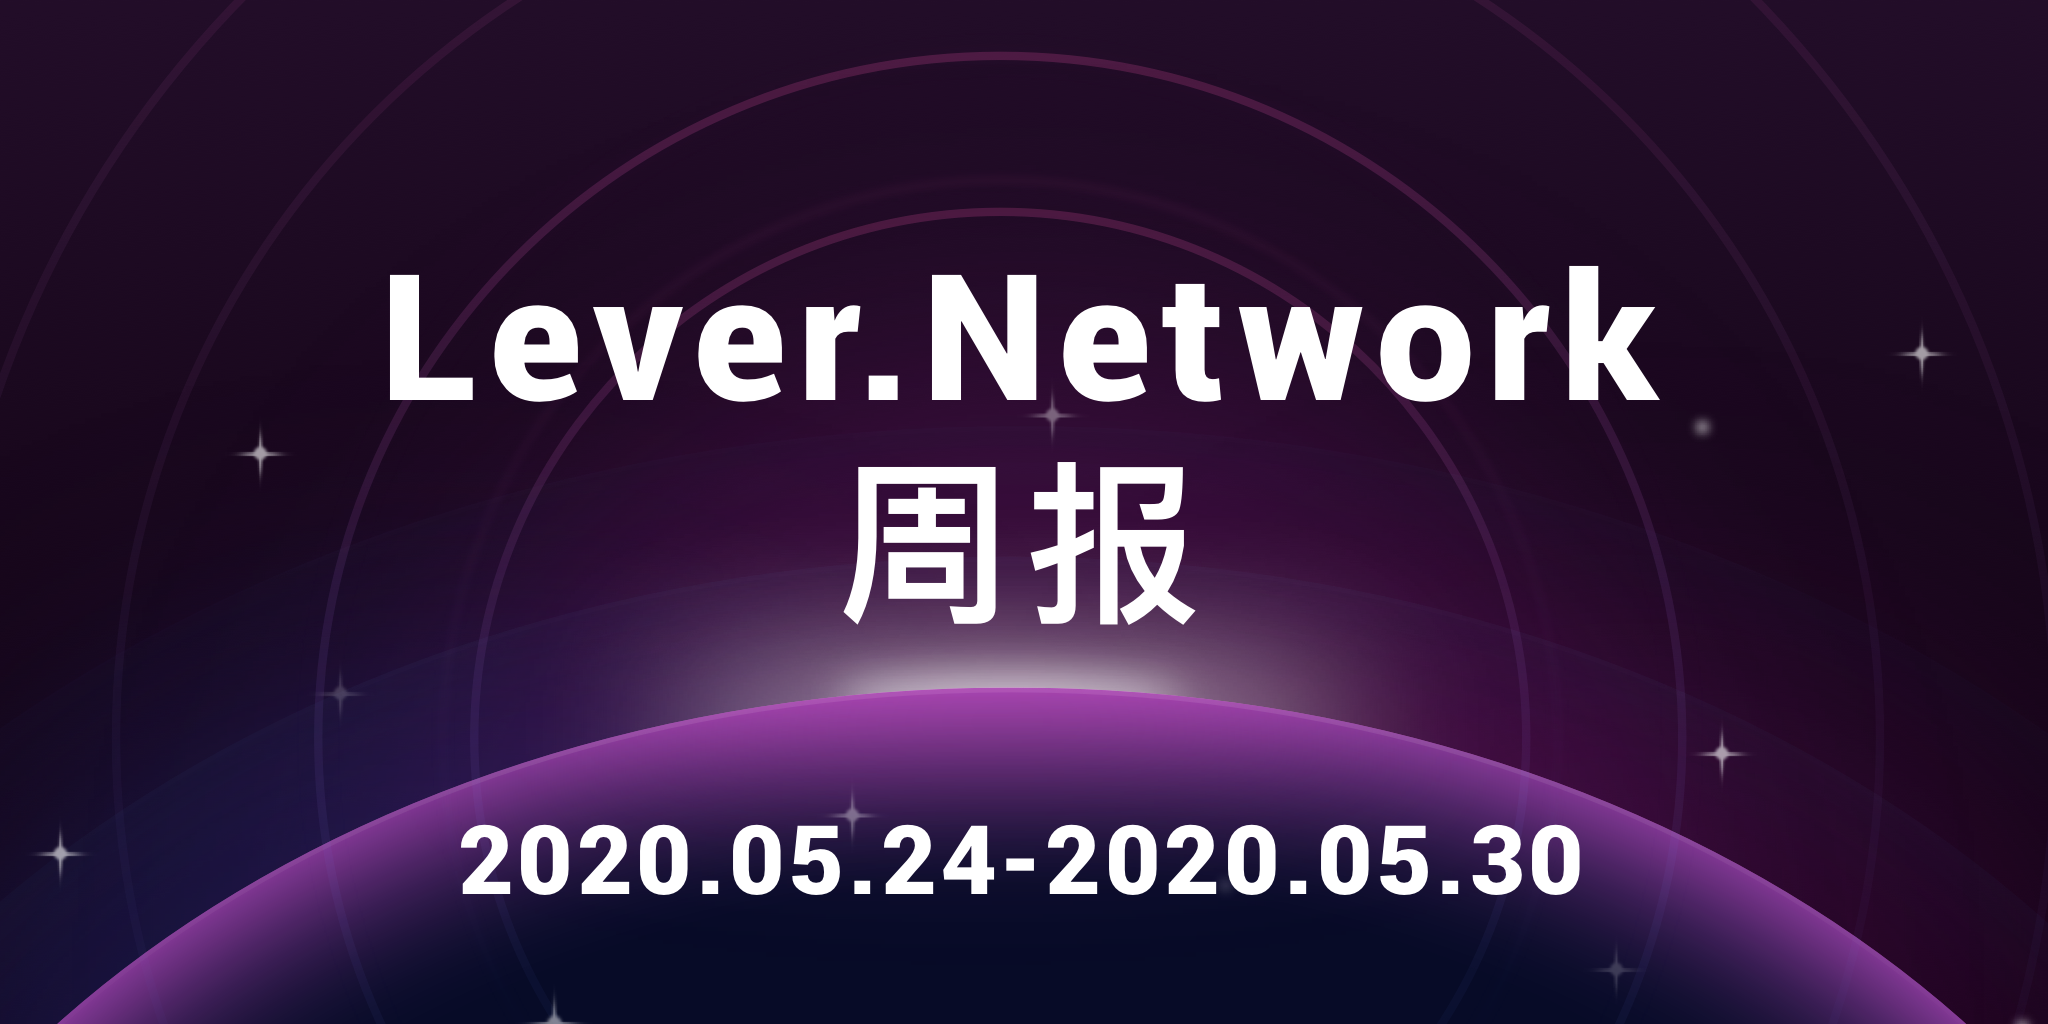 lever周报.png